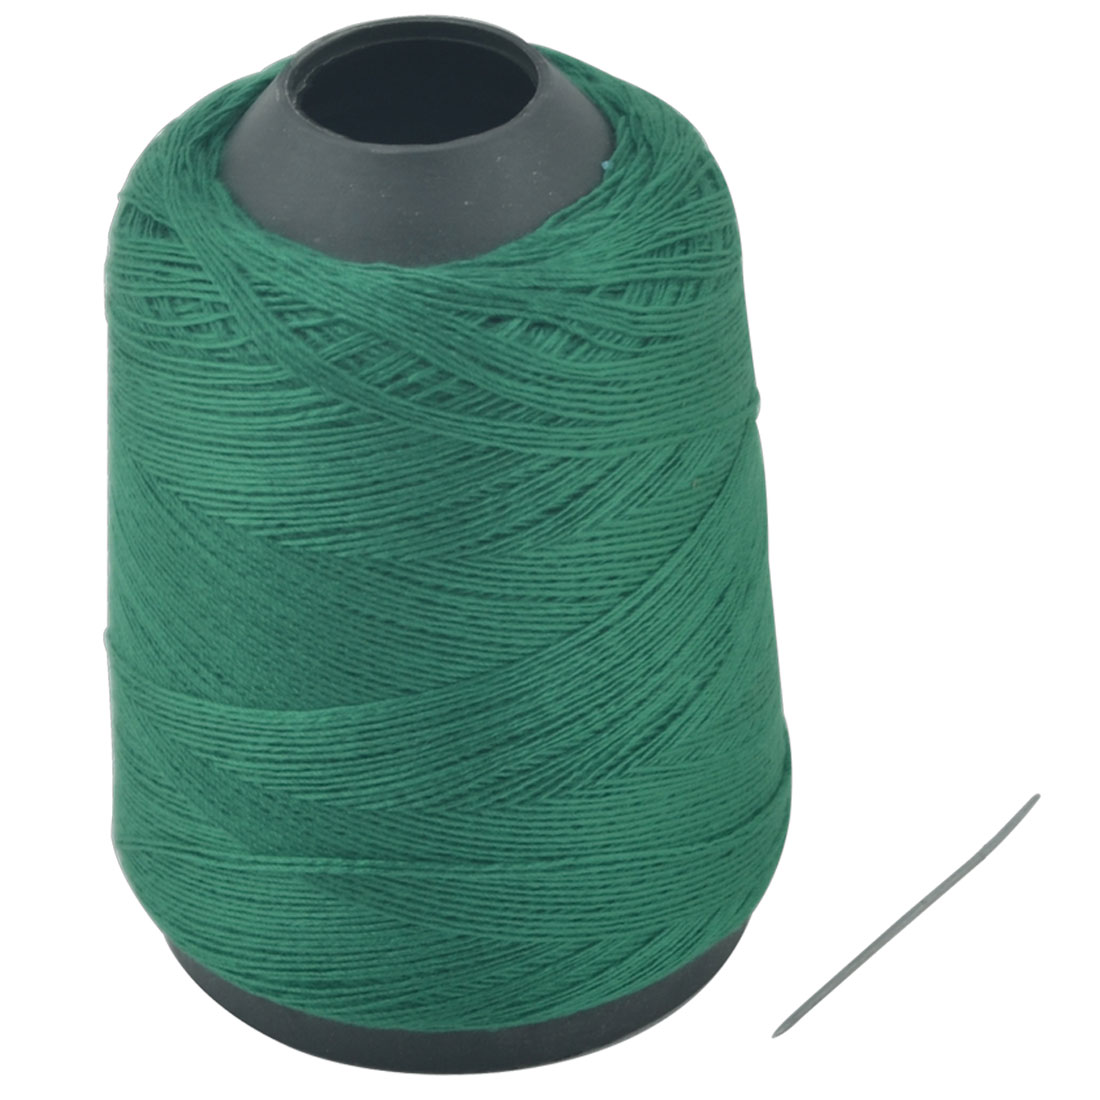 Tailor Polyester Tower Shape Crafting Clothing Sewing Thread Reel Green